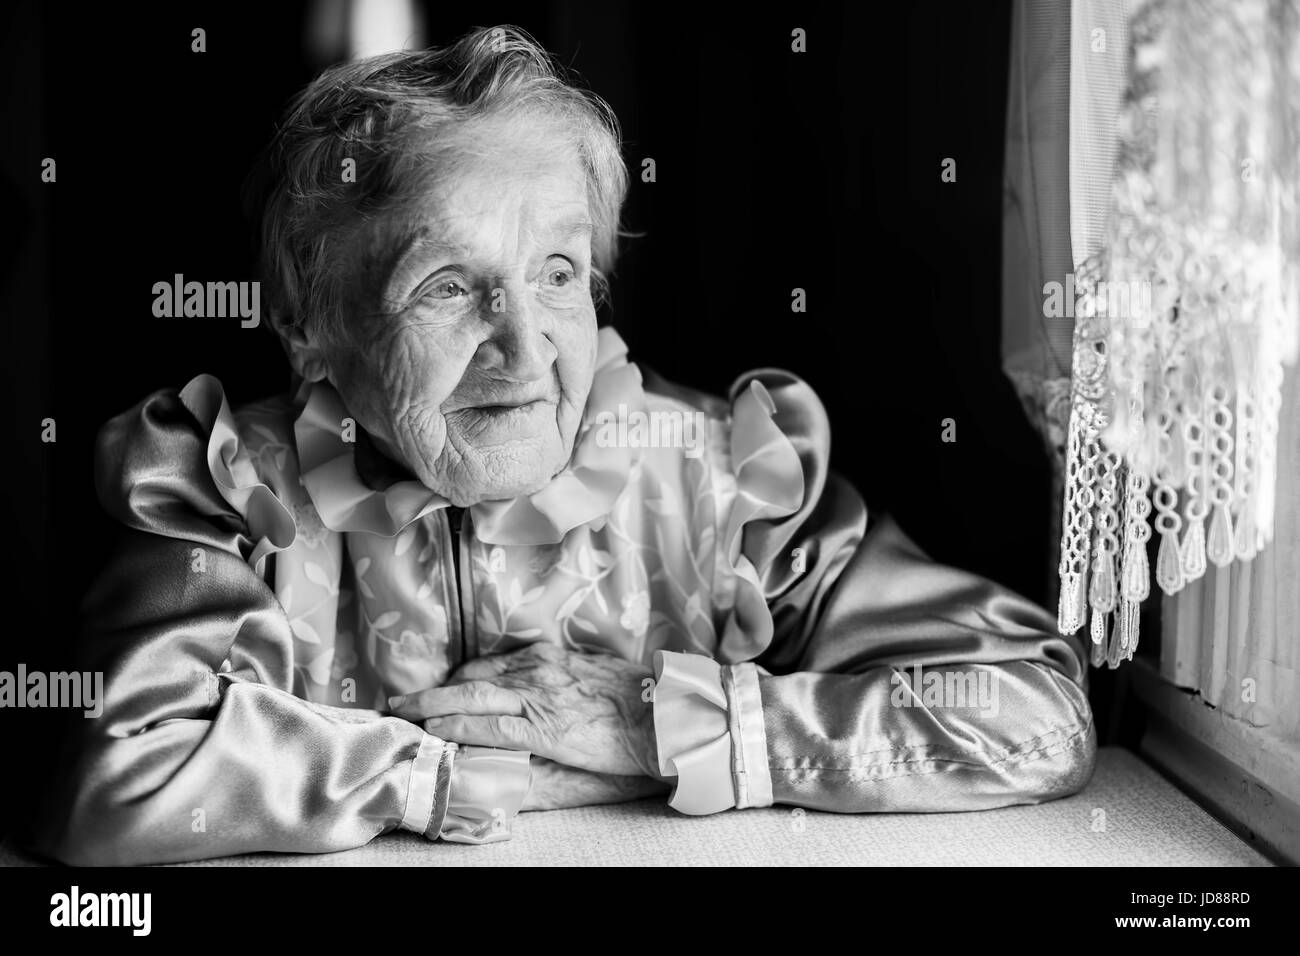 An elderly woman sitting near the window. Slavic Grandmother, a black and white portrait. - Stock Image